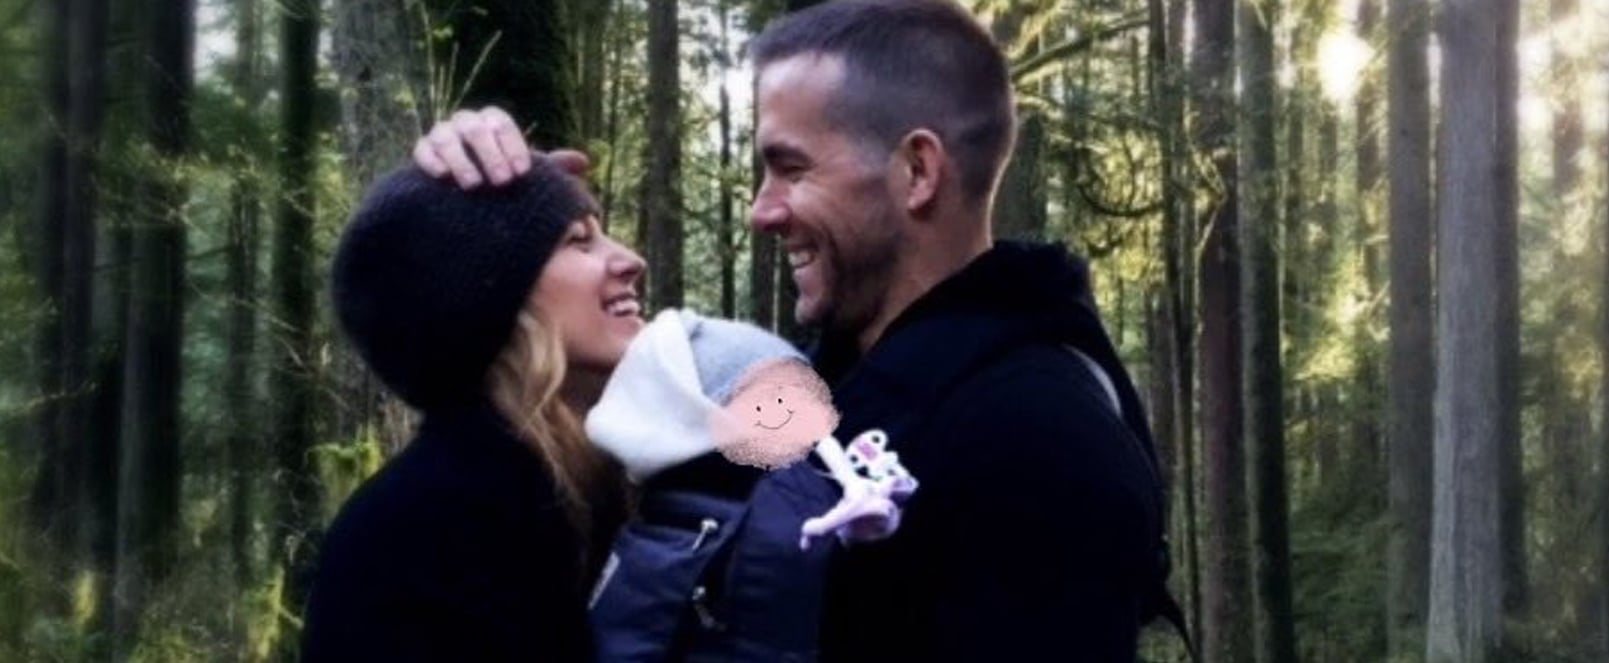 Is Blake Lively and Ryan Reynolds's Third Baby a Boy or Girl